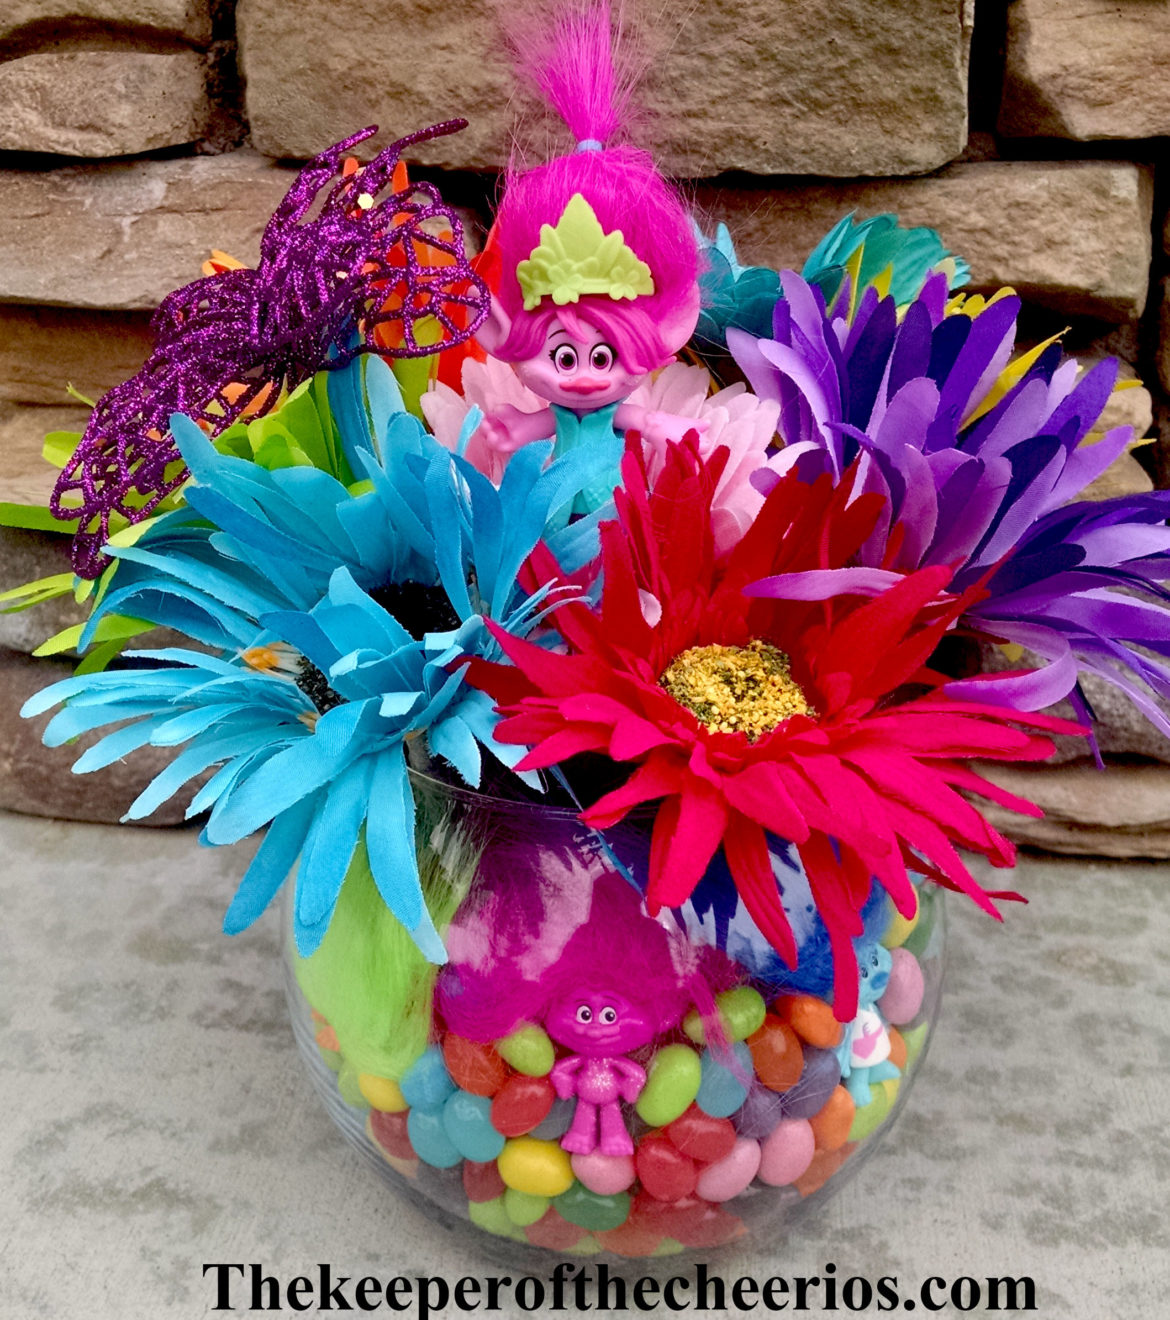 TROLLS PARTY CENTERPIECE IDEA